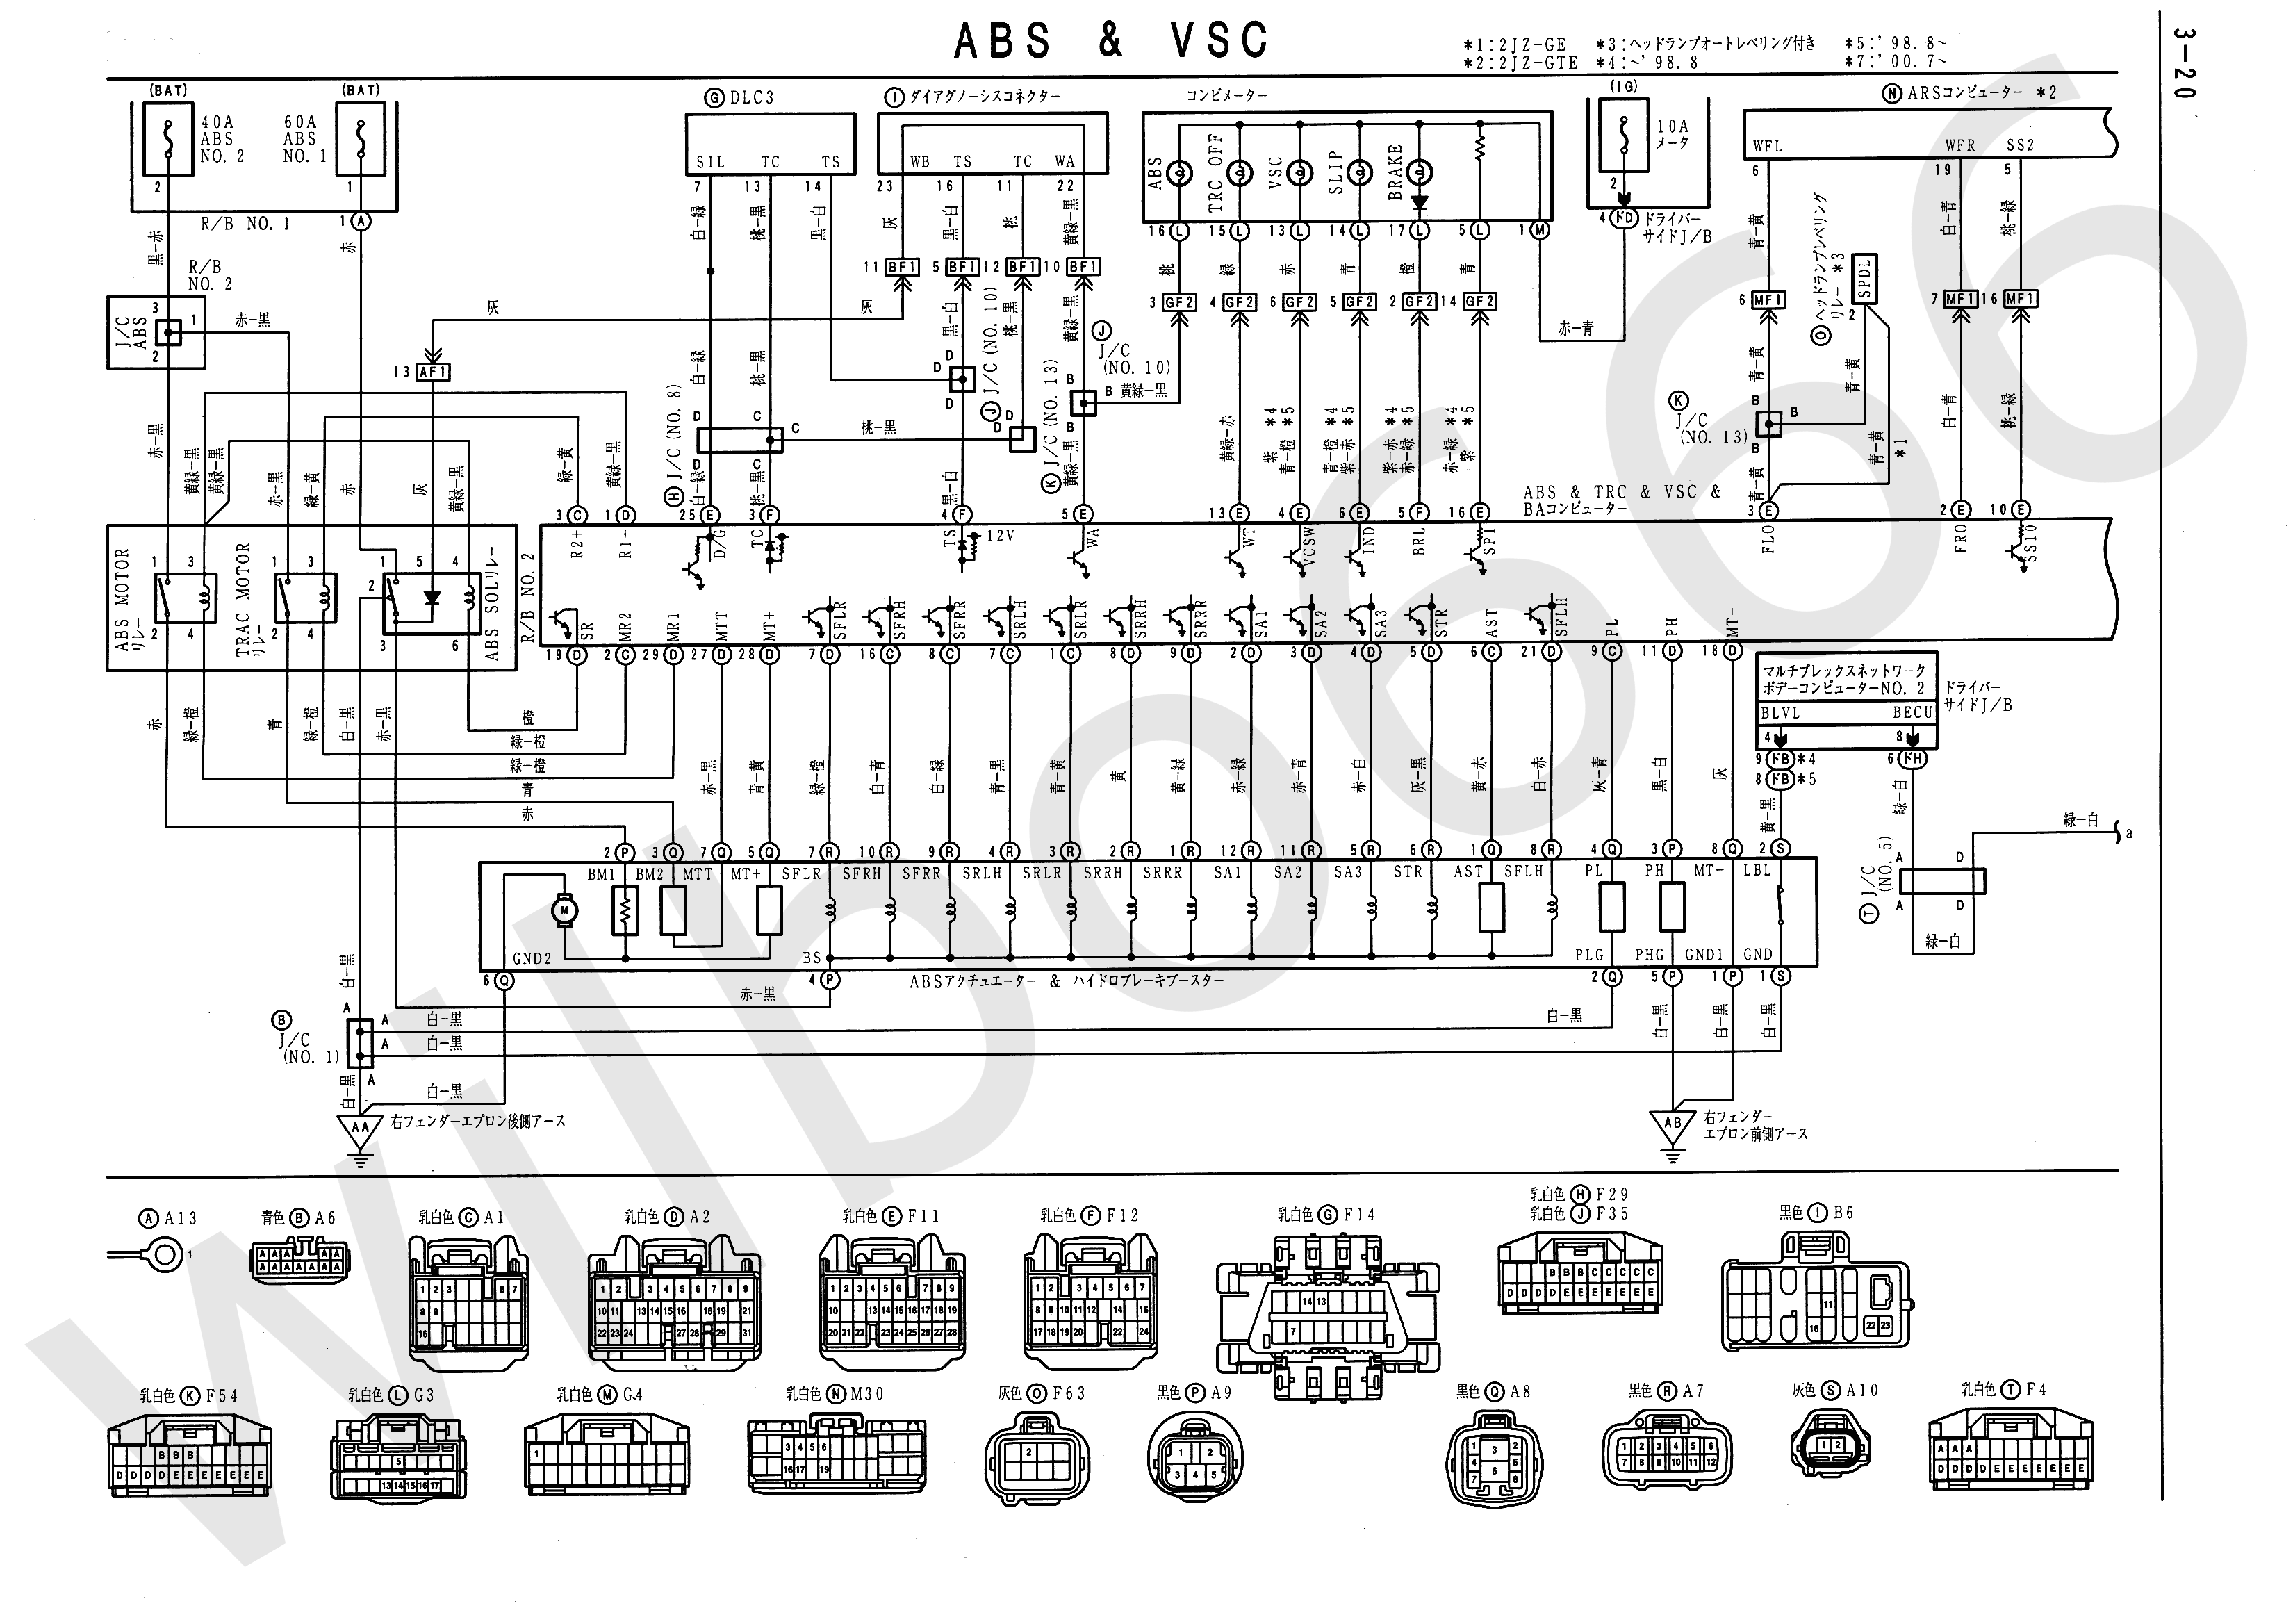 JZS161 Electrical Wiring Diagram 6748505 3 20 wilbo666 2jz gte vvti jzs161 aristo engine wiring 2jz wiring diagram at gsmportal.co